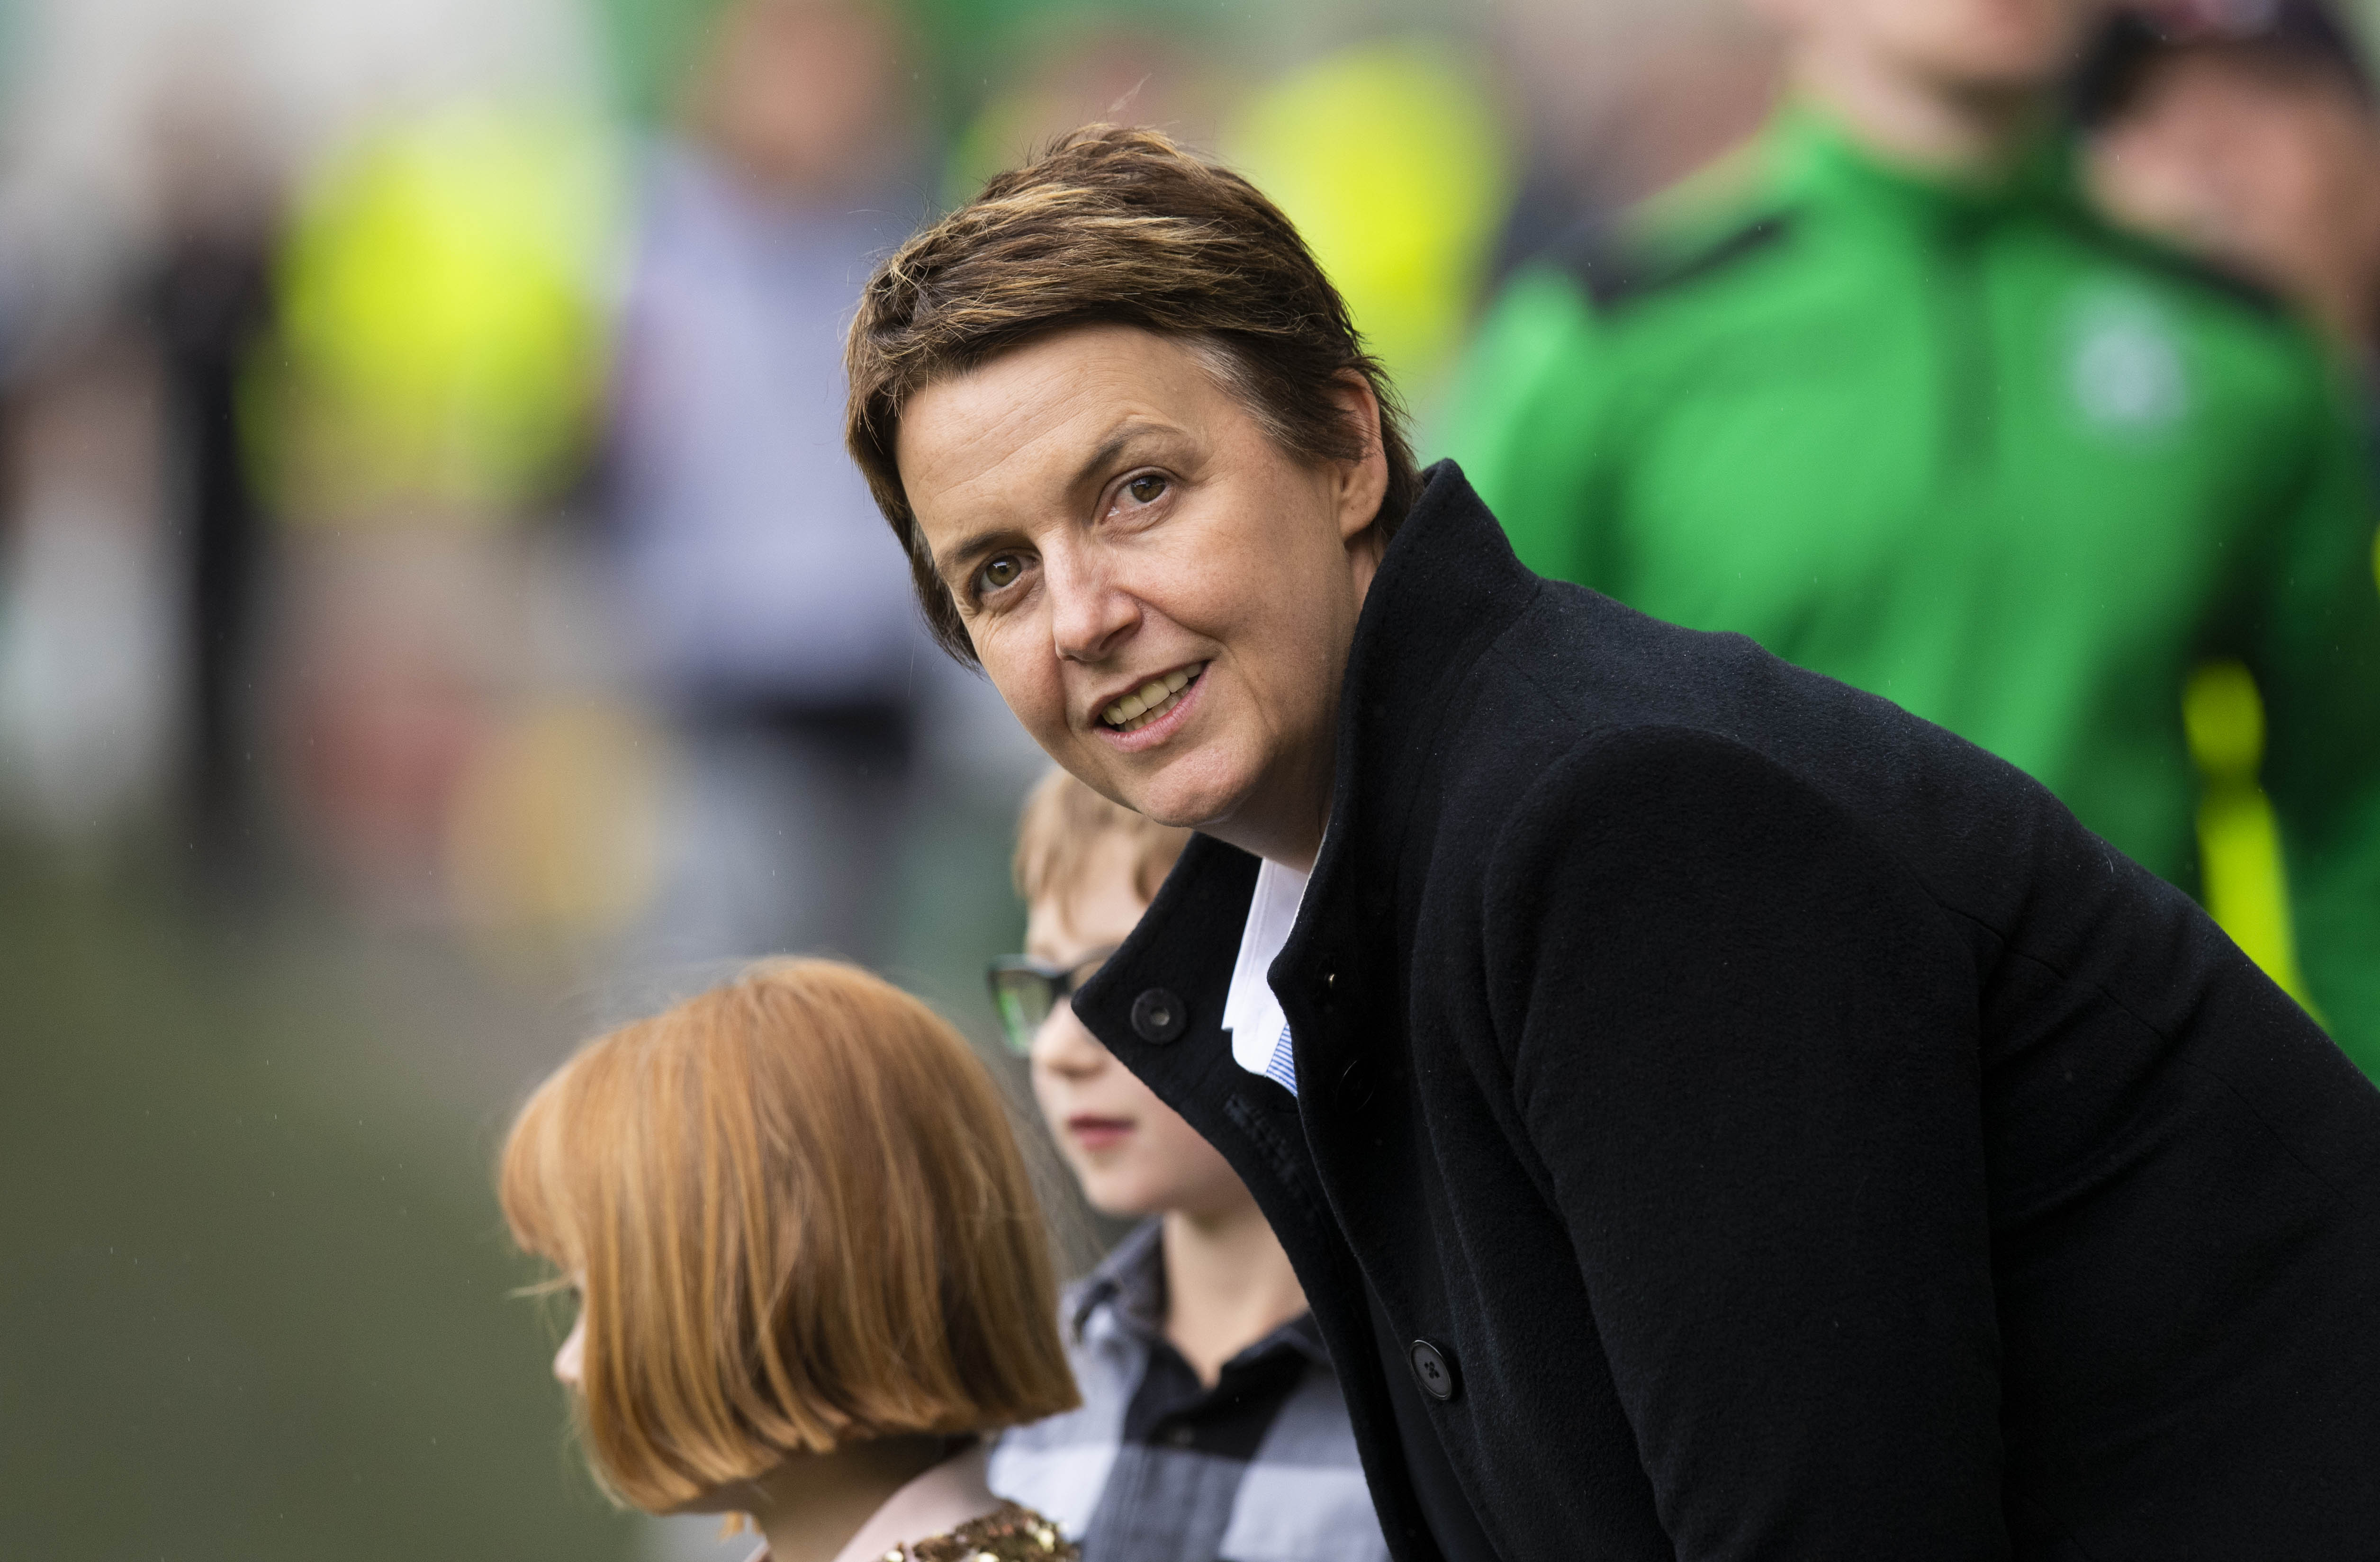 Hibernian chief executive Leeann Dempster